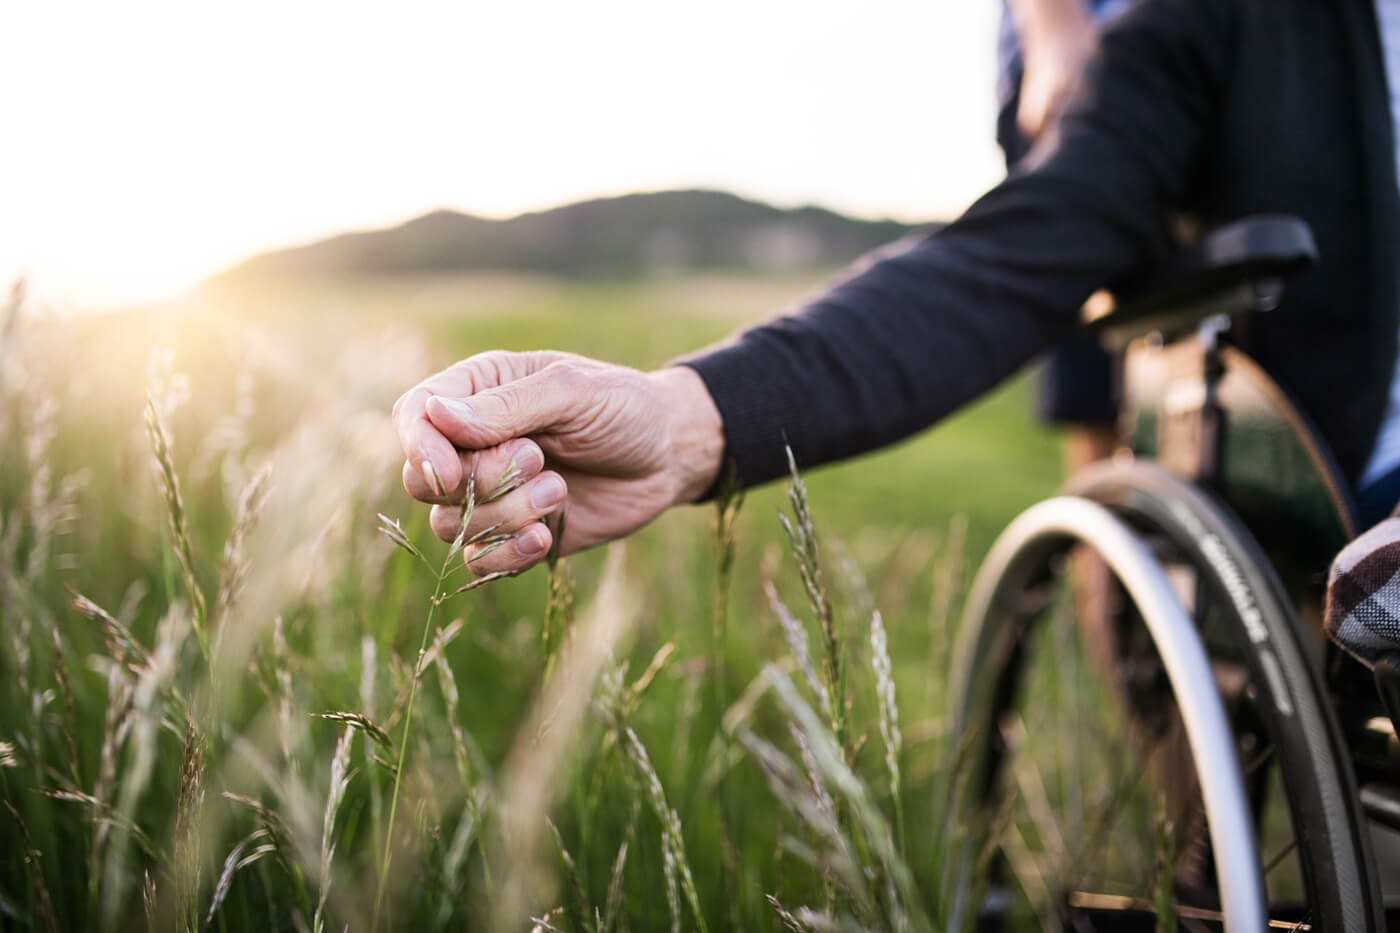 An elderly mans hand reaching out to touch grass while sitting in a wheelchair in the middle of a field.